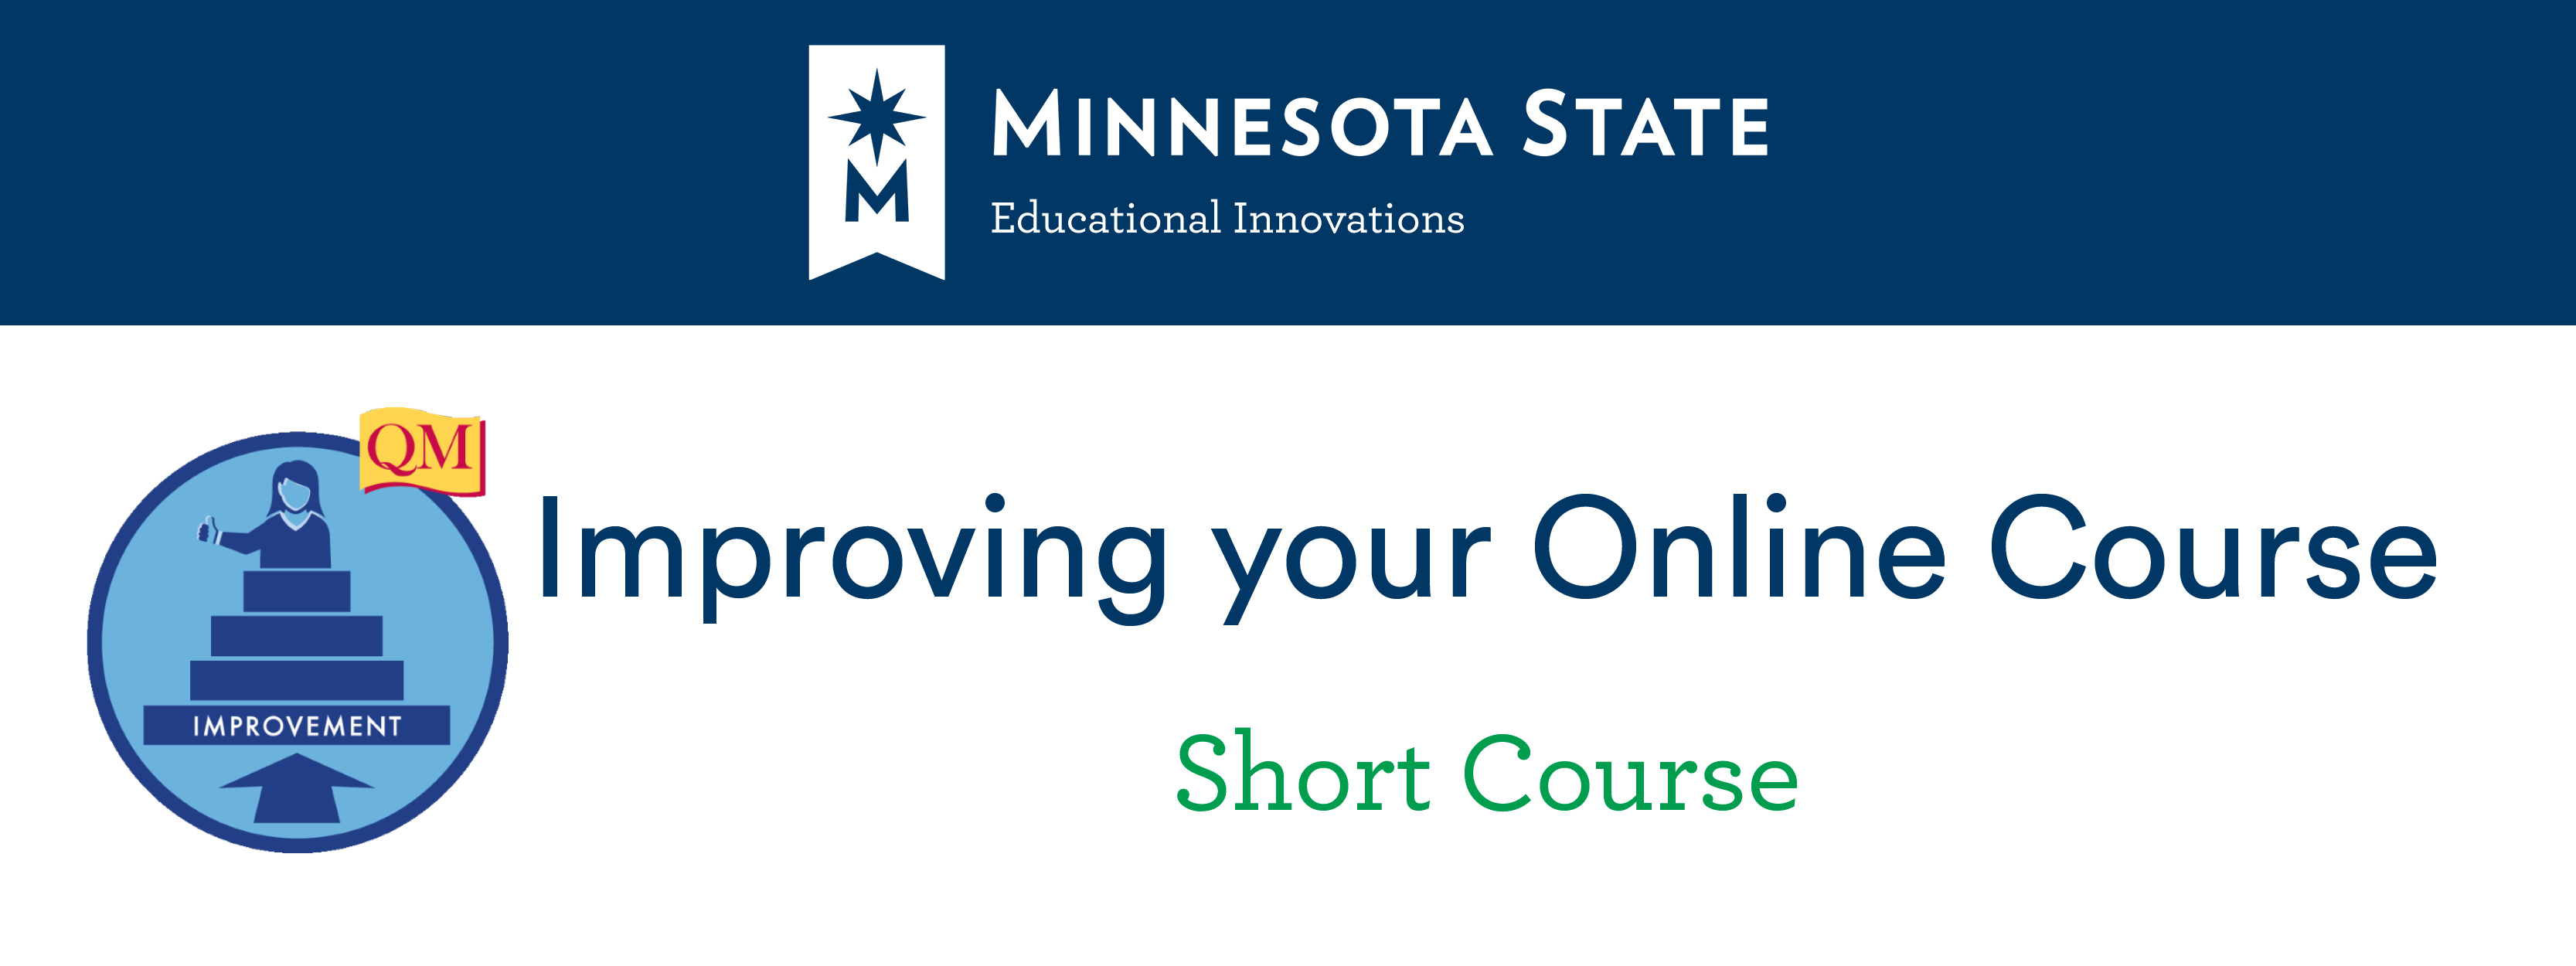 Improving Your Online Course